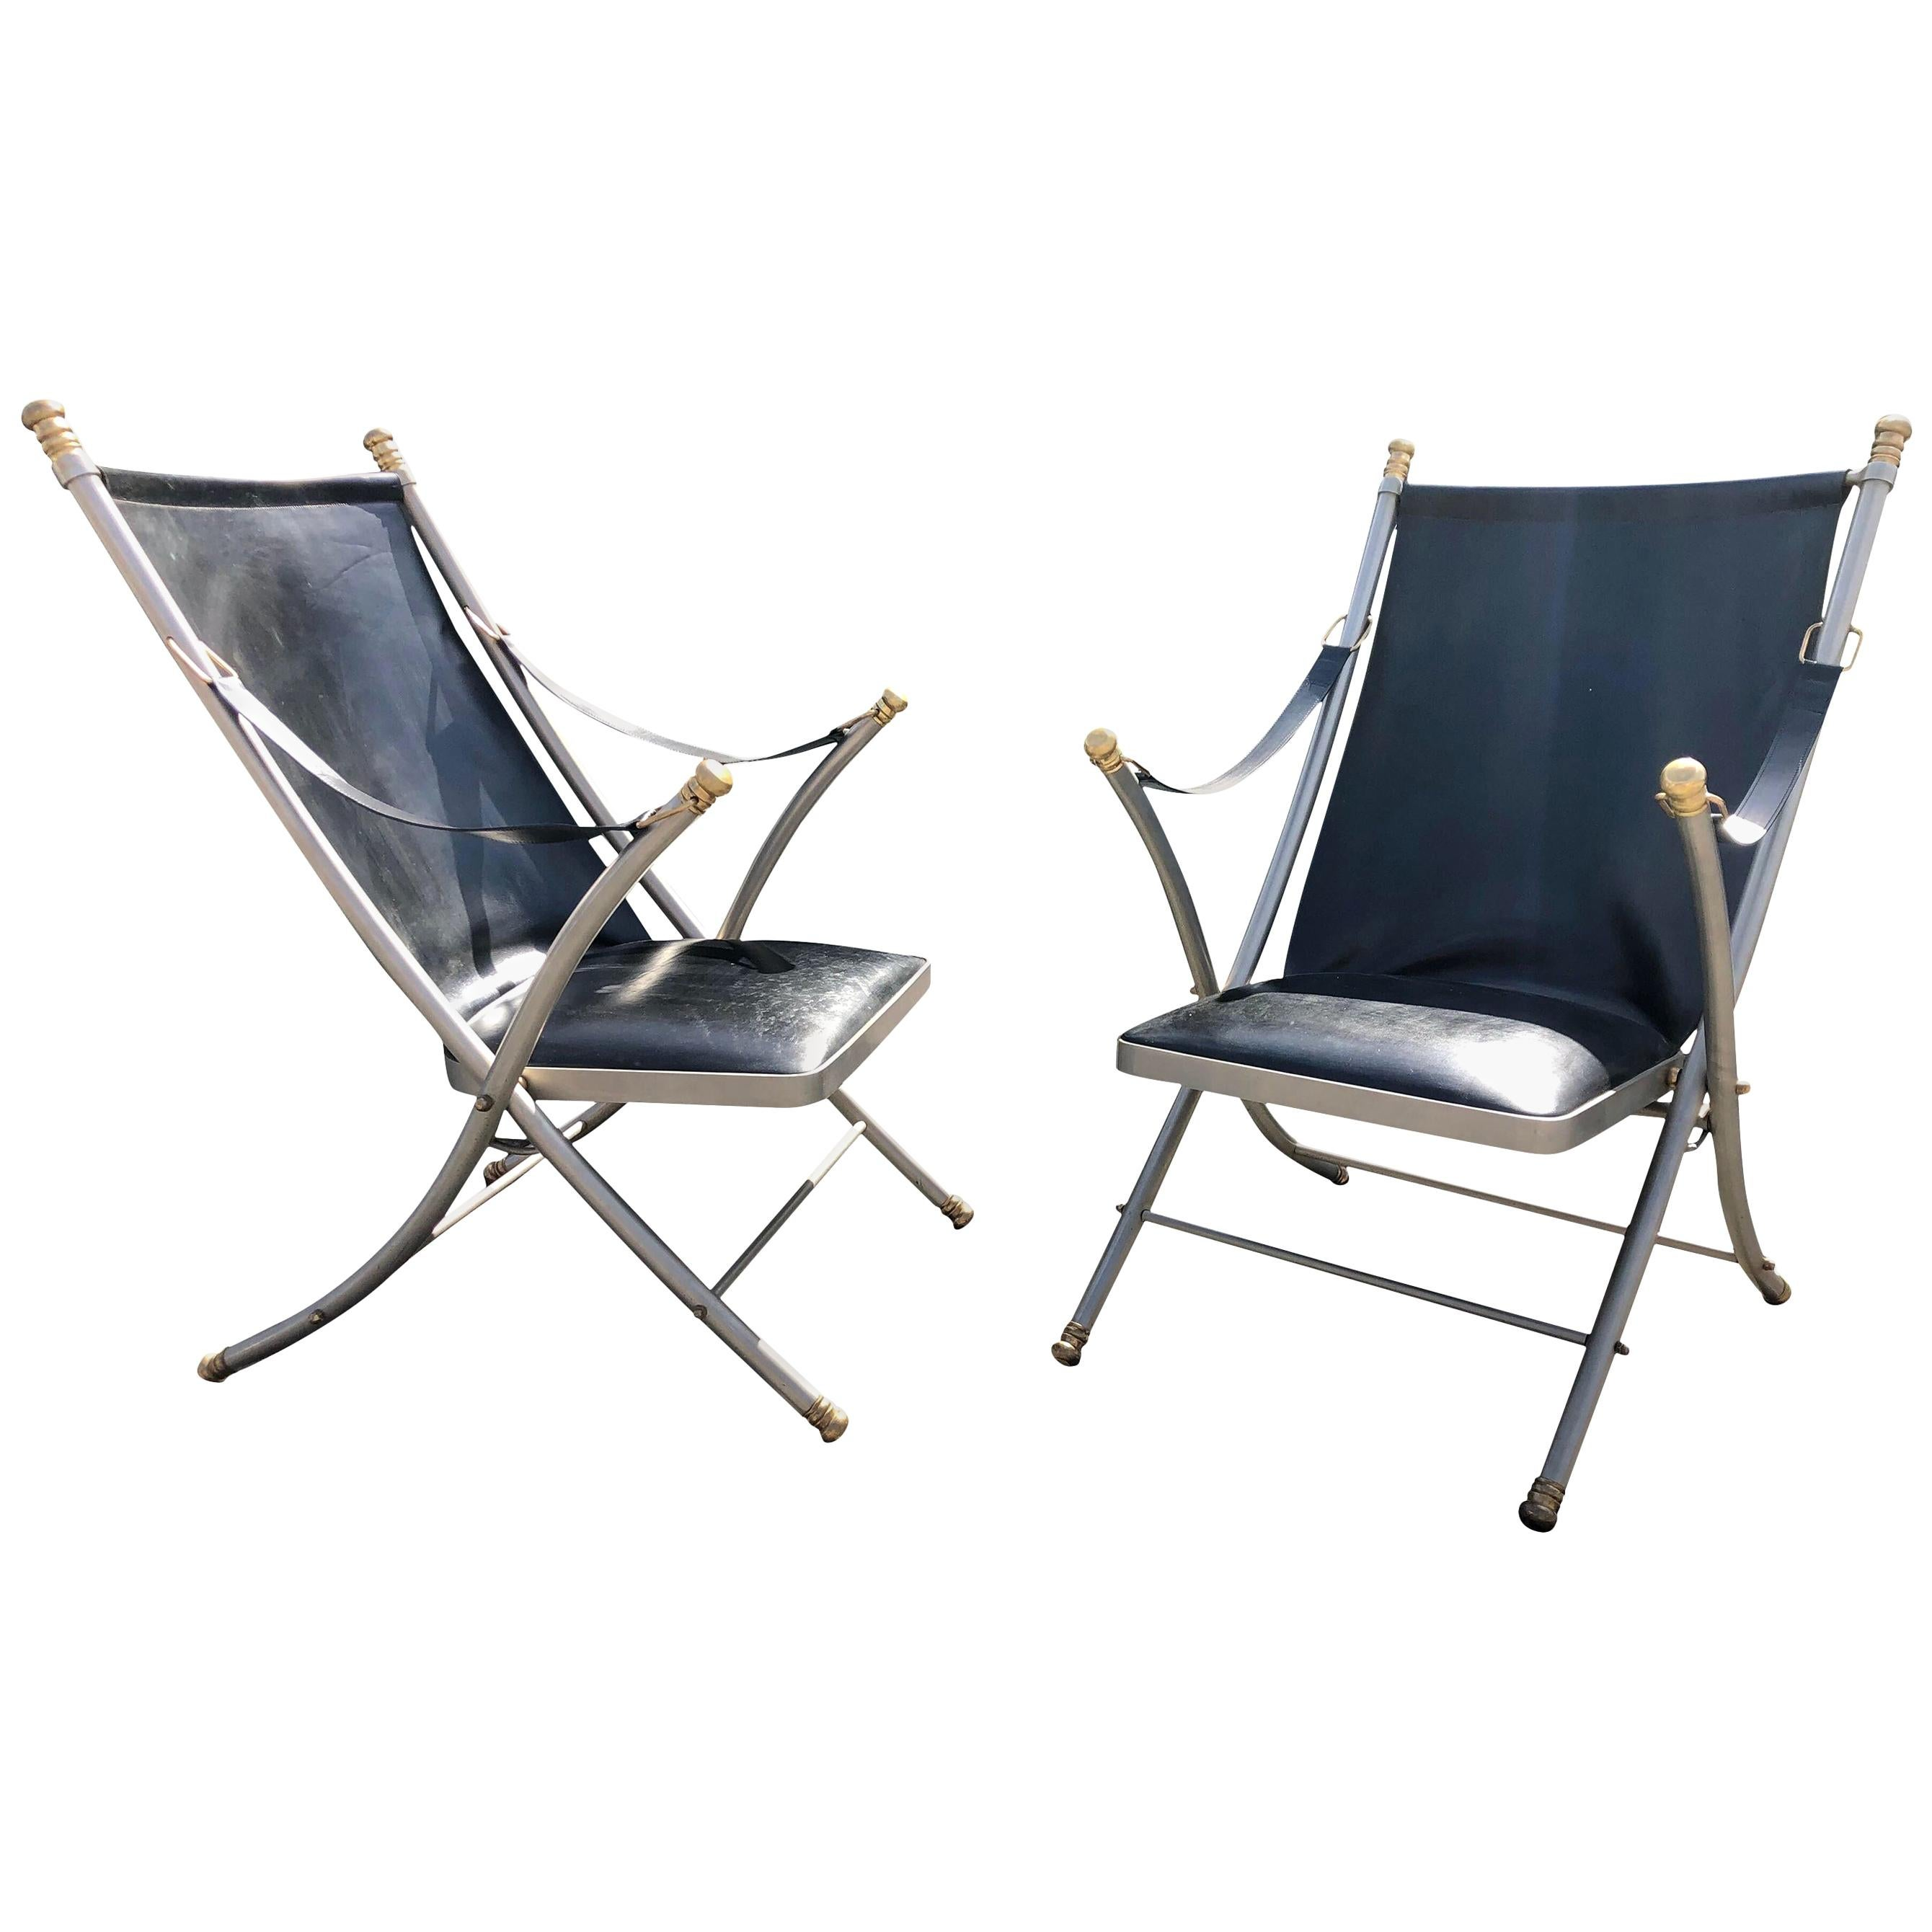 Pair of Midcentury Jansen Campaign Chairs